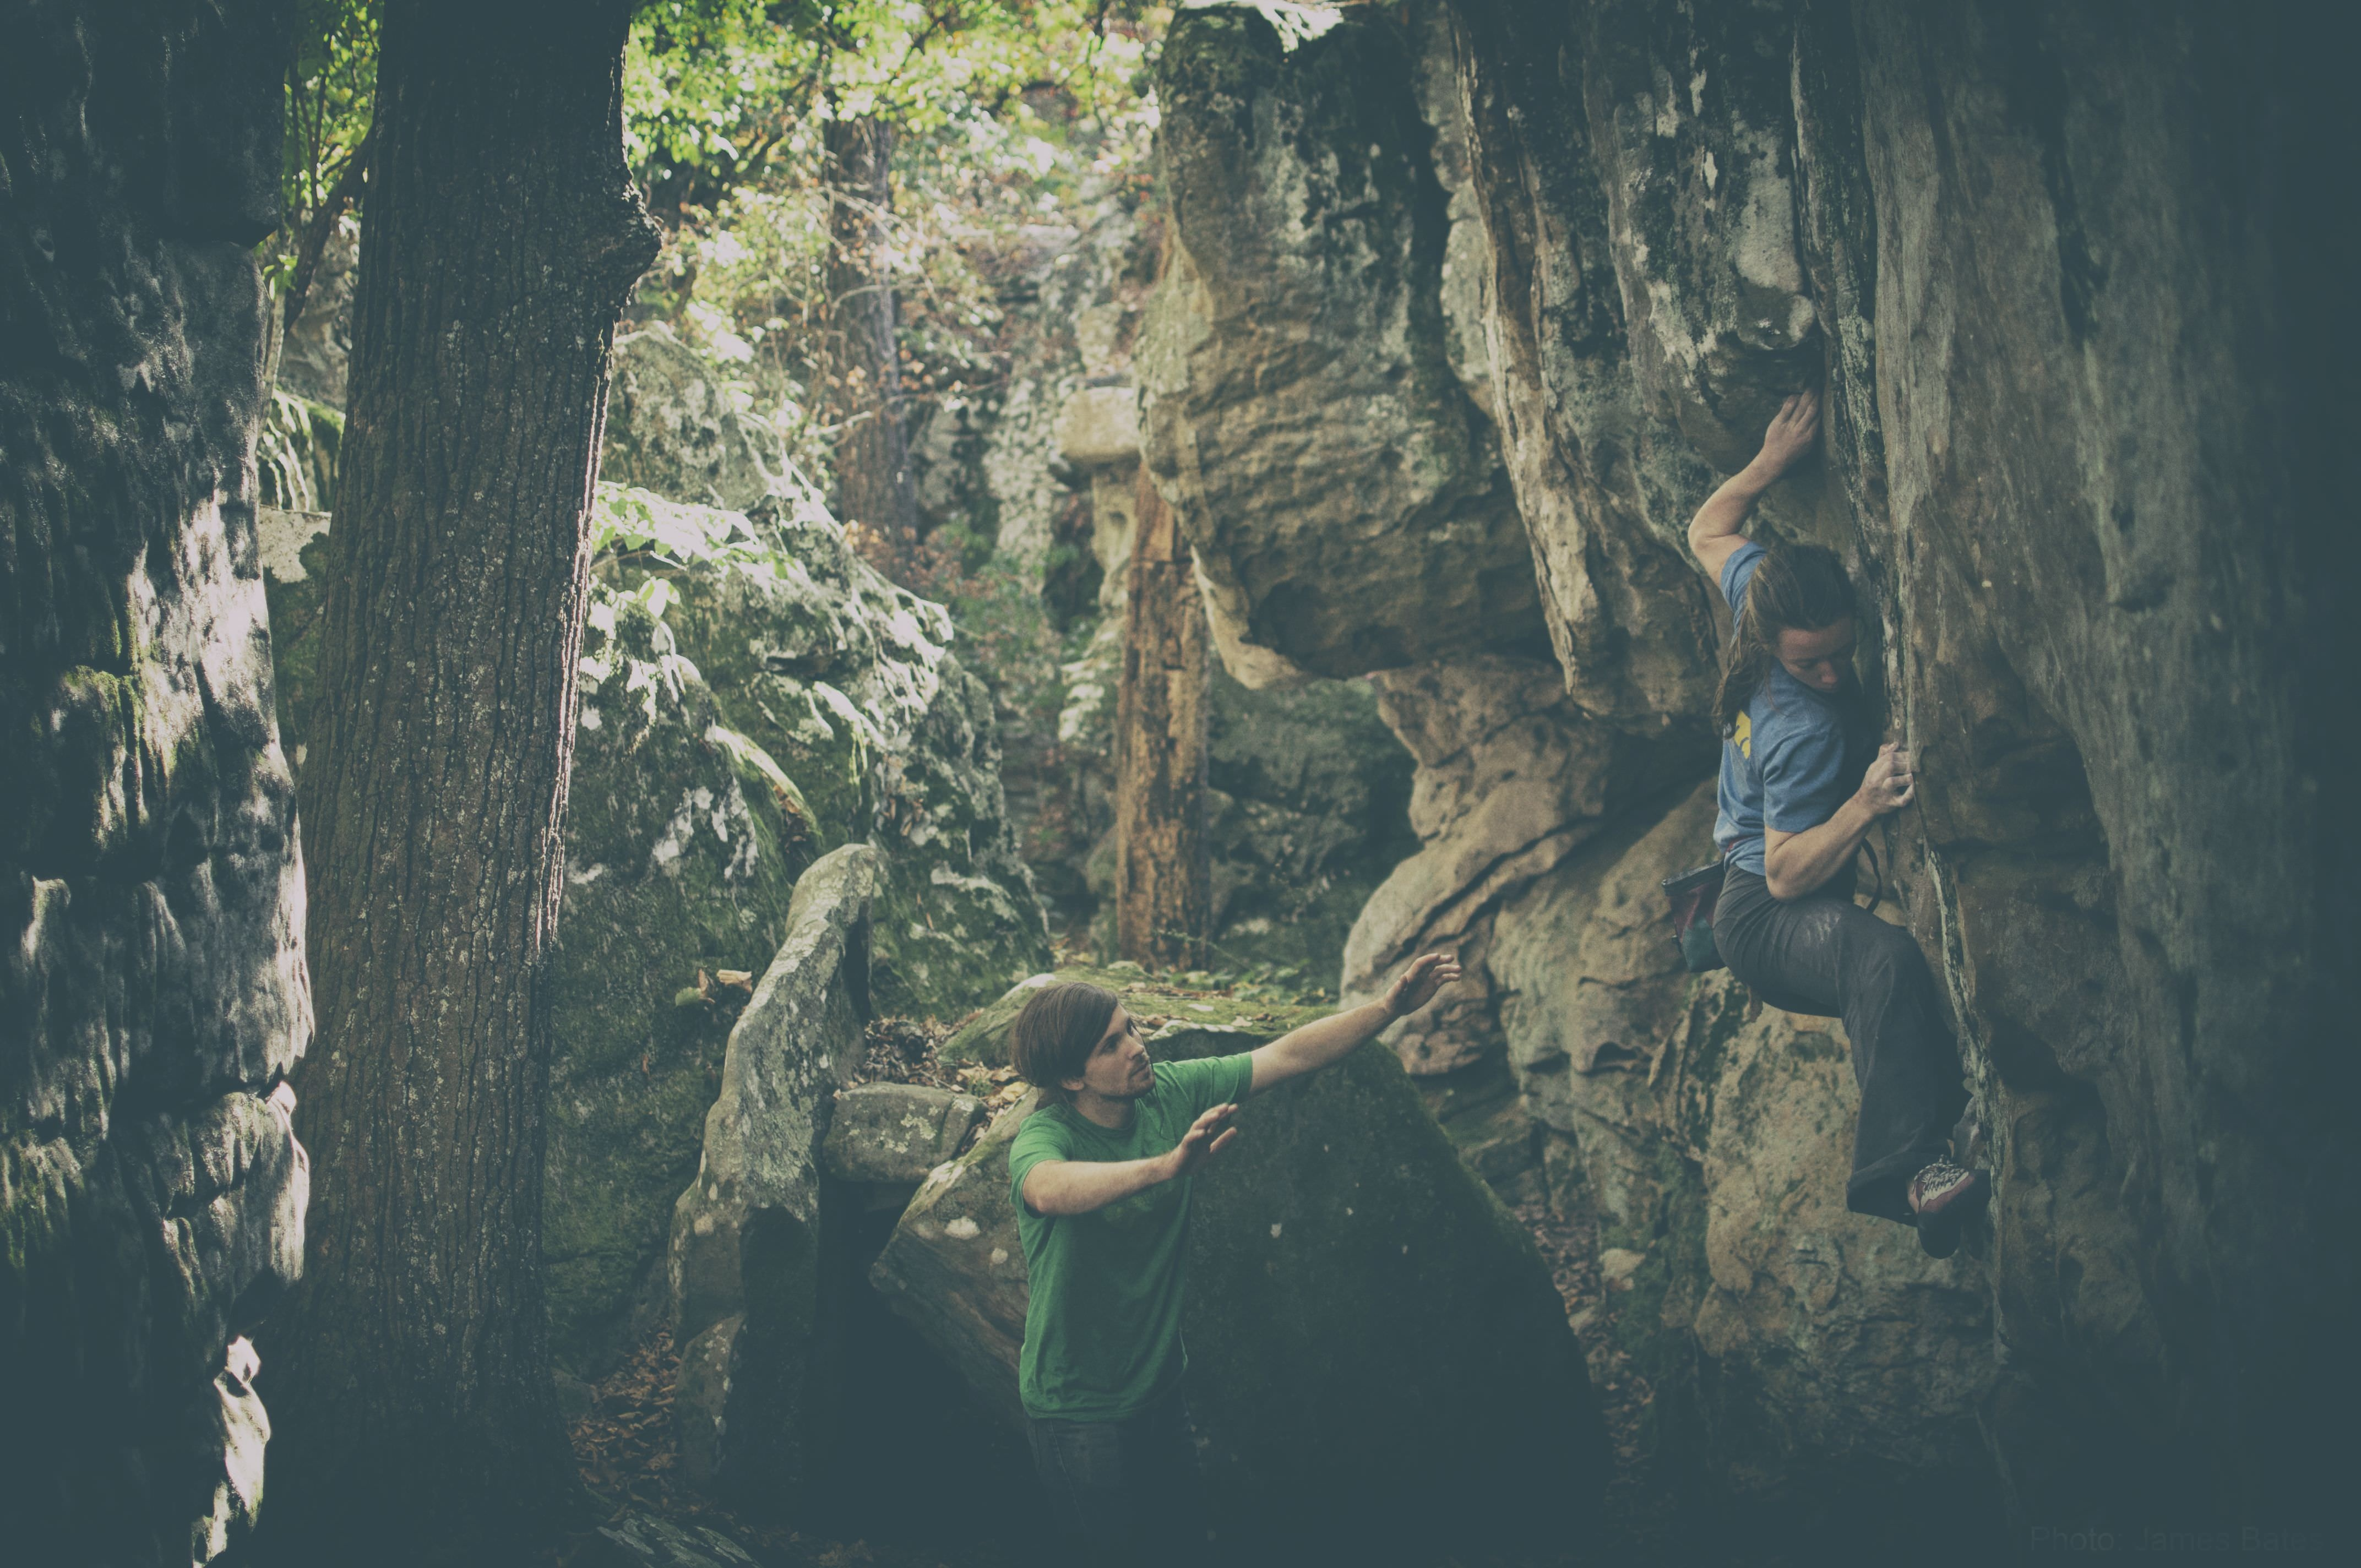 UA researcher Eva-Maria Stelzer was involved in a study finding that bouldering can help people avoid a mental avalanche in life. The study provides evidence that a bouldering psychotherapy can be effective for reducing symptoms of depression and that the